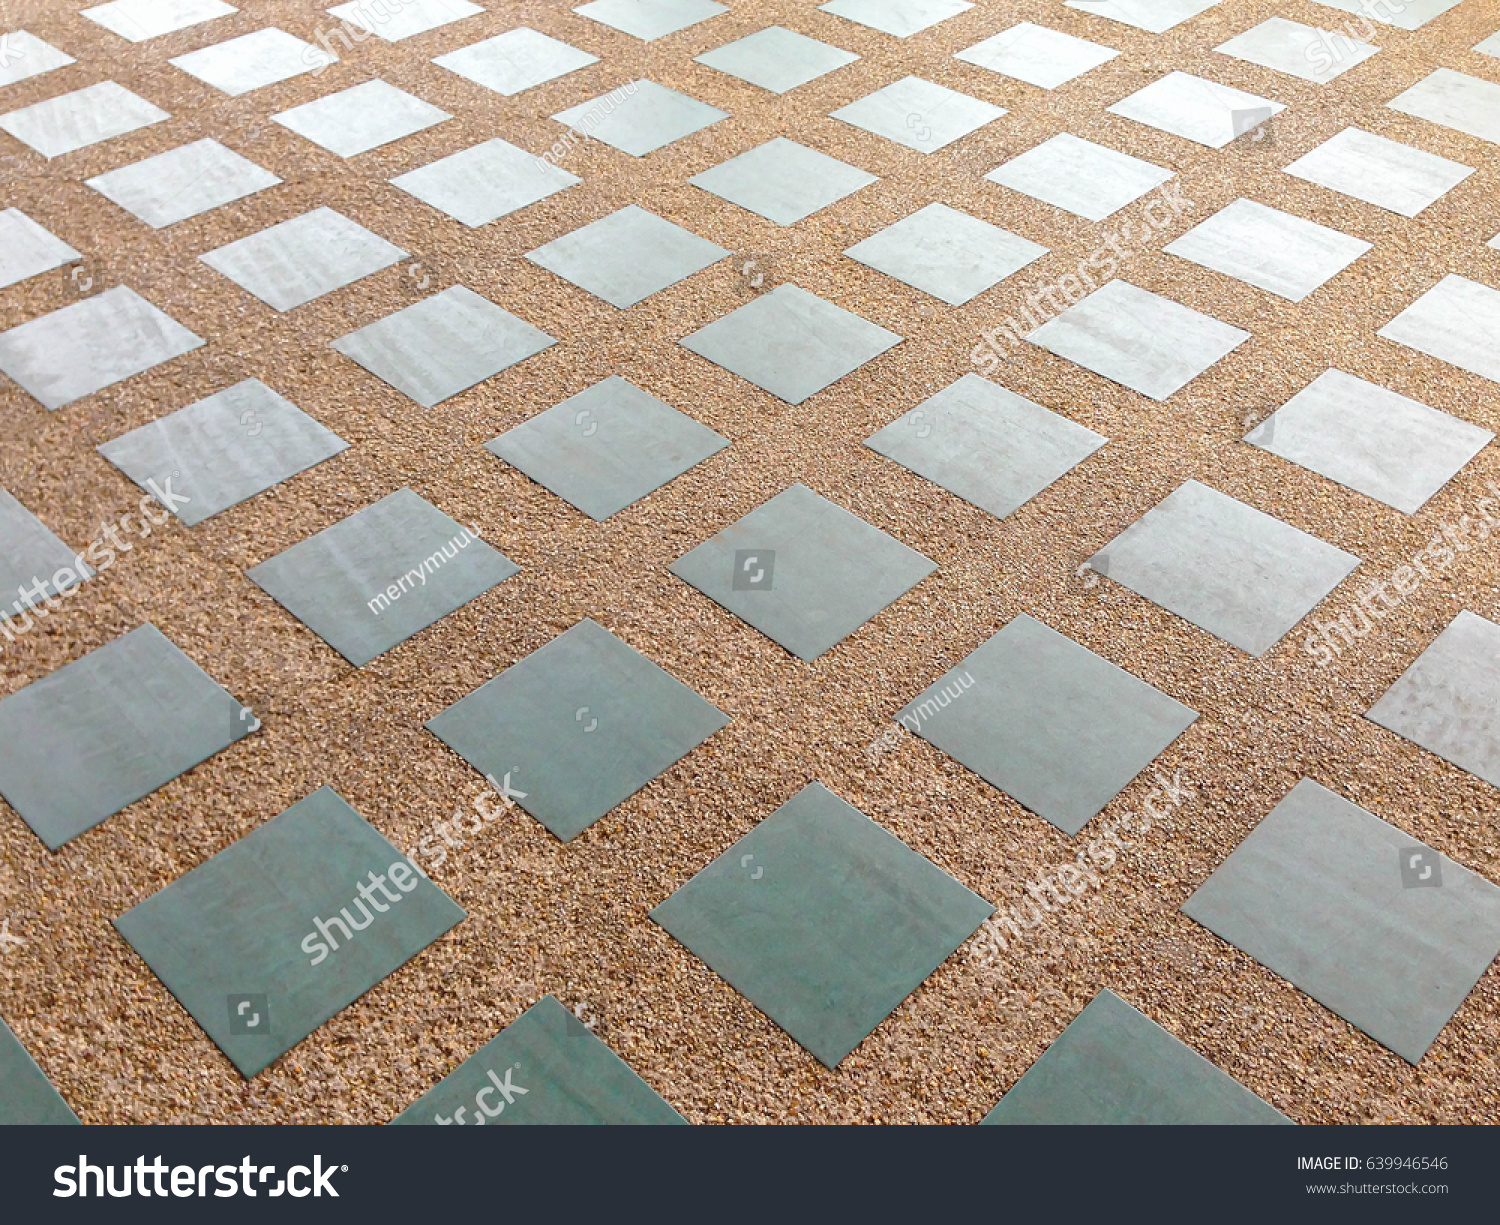 Floor tiles texture background green blue stock photo 639946546 floor tiles texture background in green blue geometric square shape with brown gravel small stone decoration dailygadgetfo Images